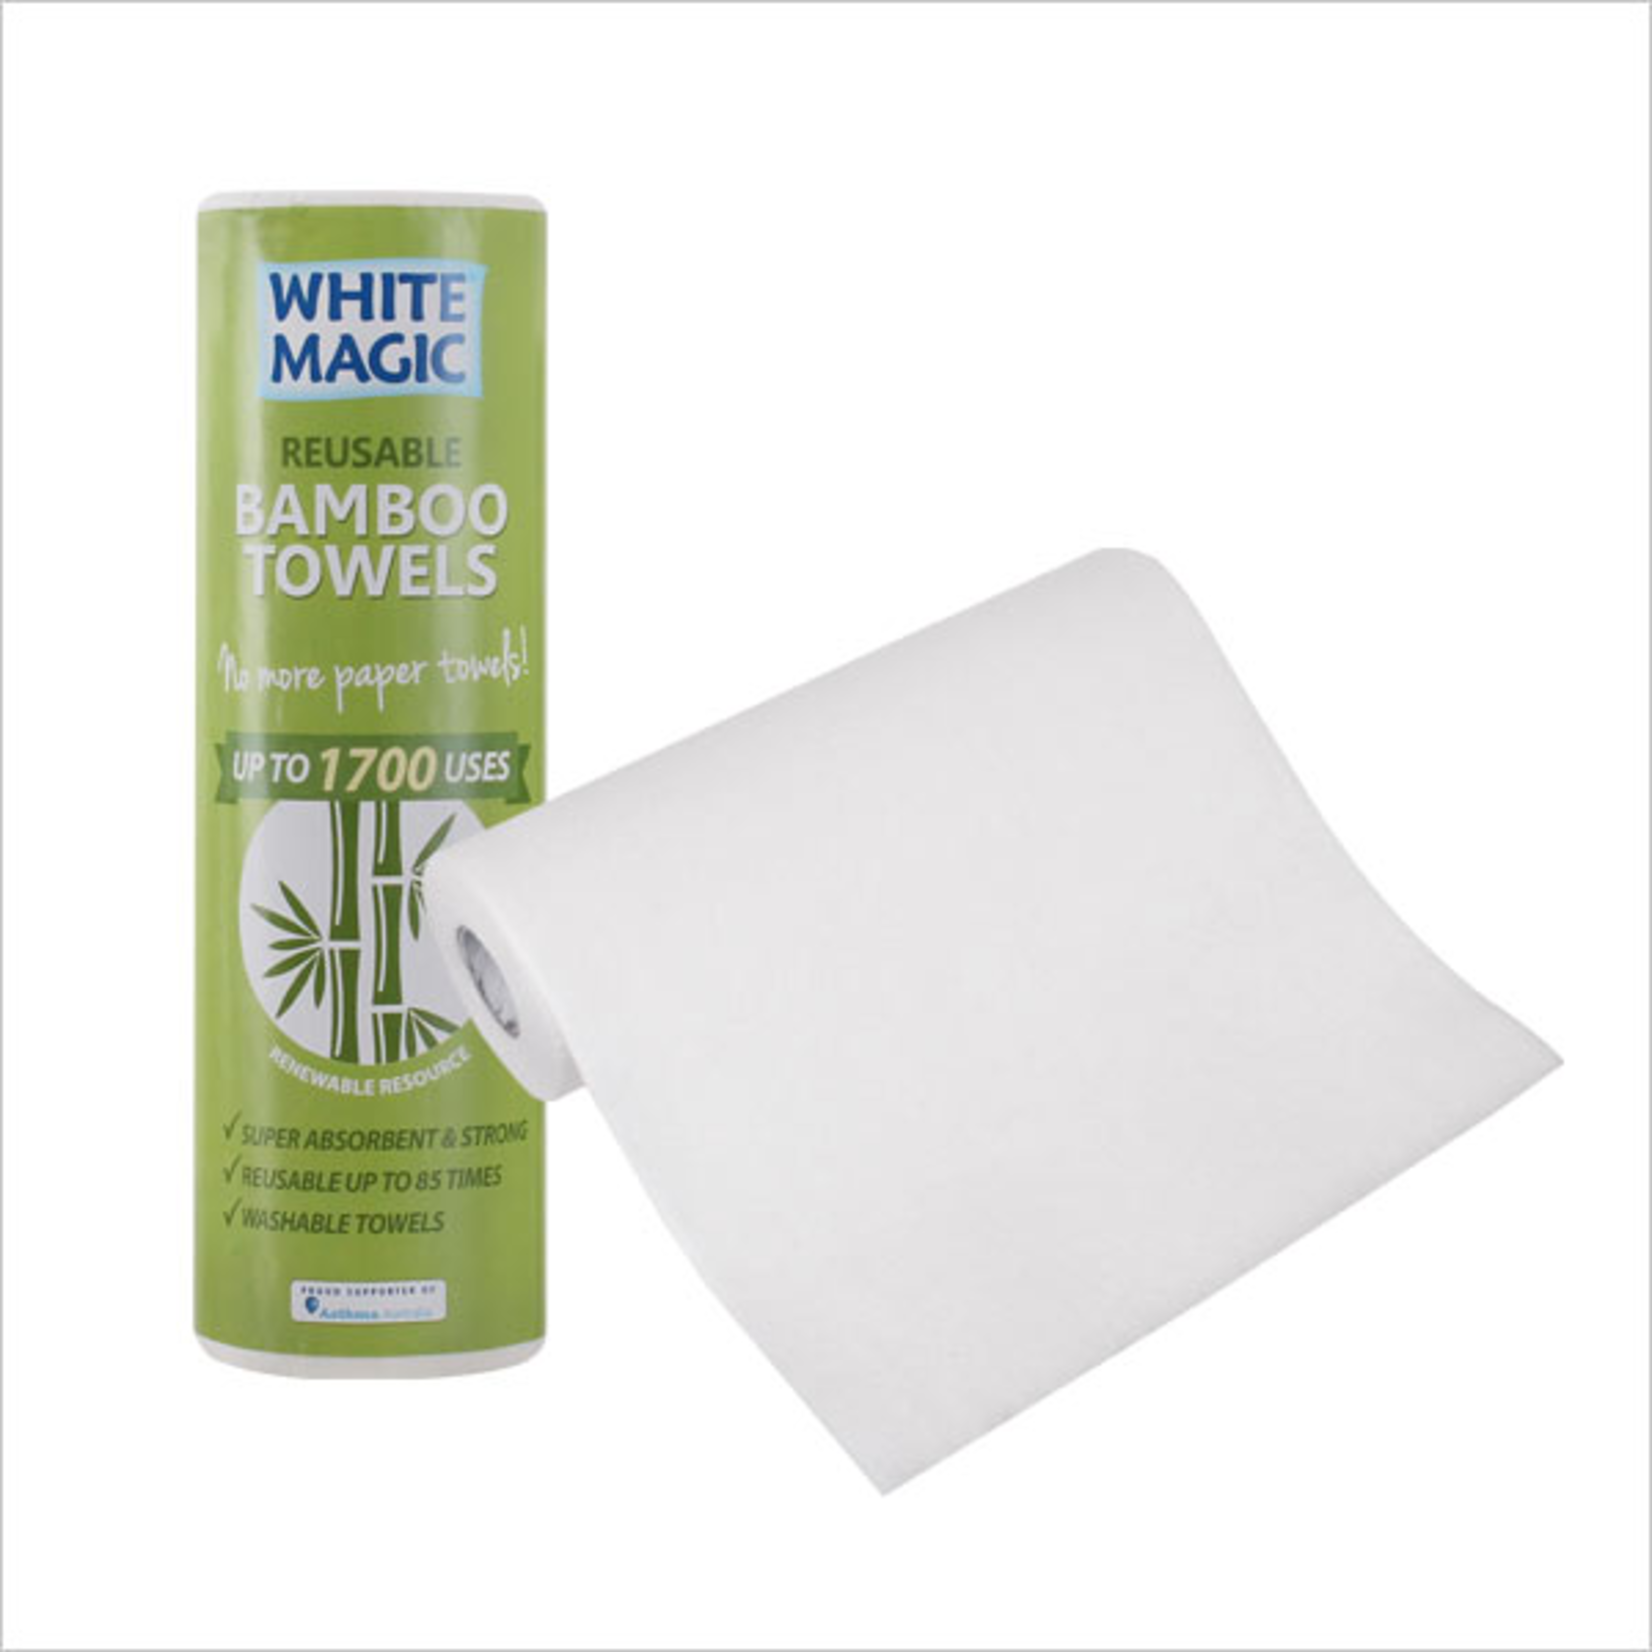 White Magic White Magic Bamboo Towel